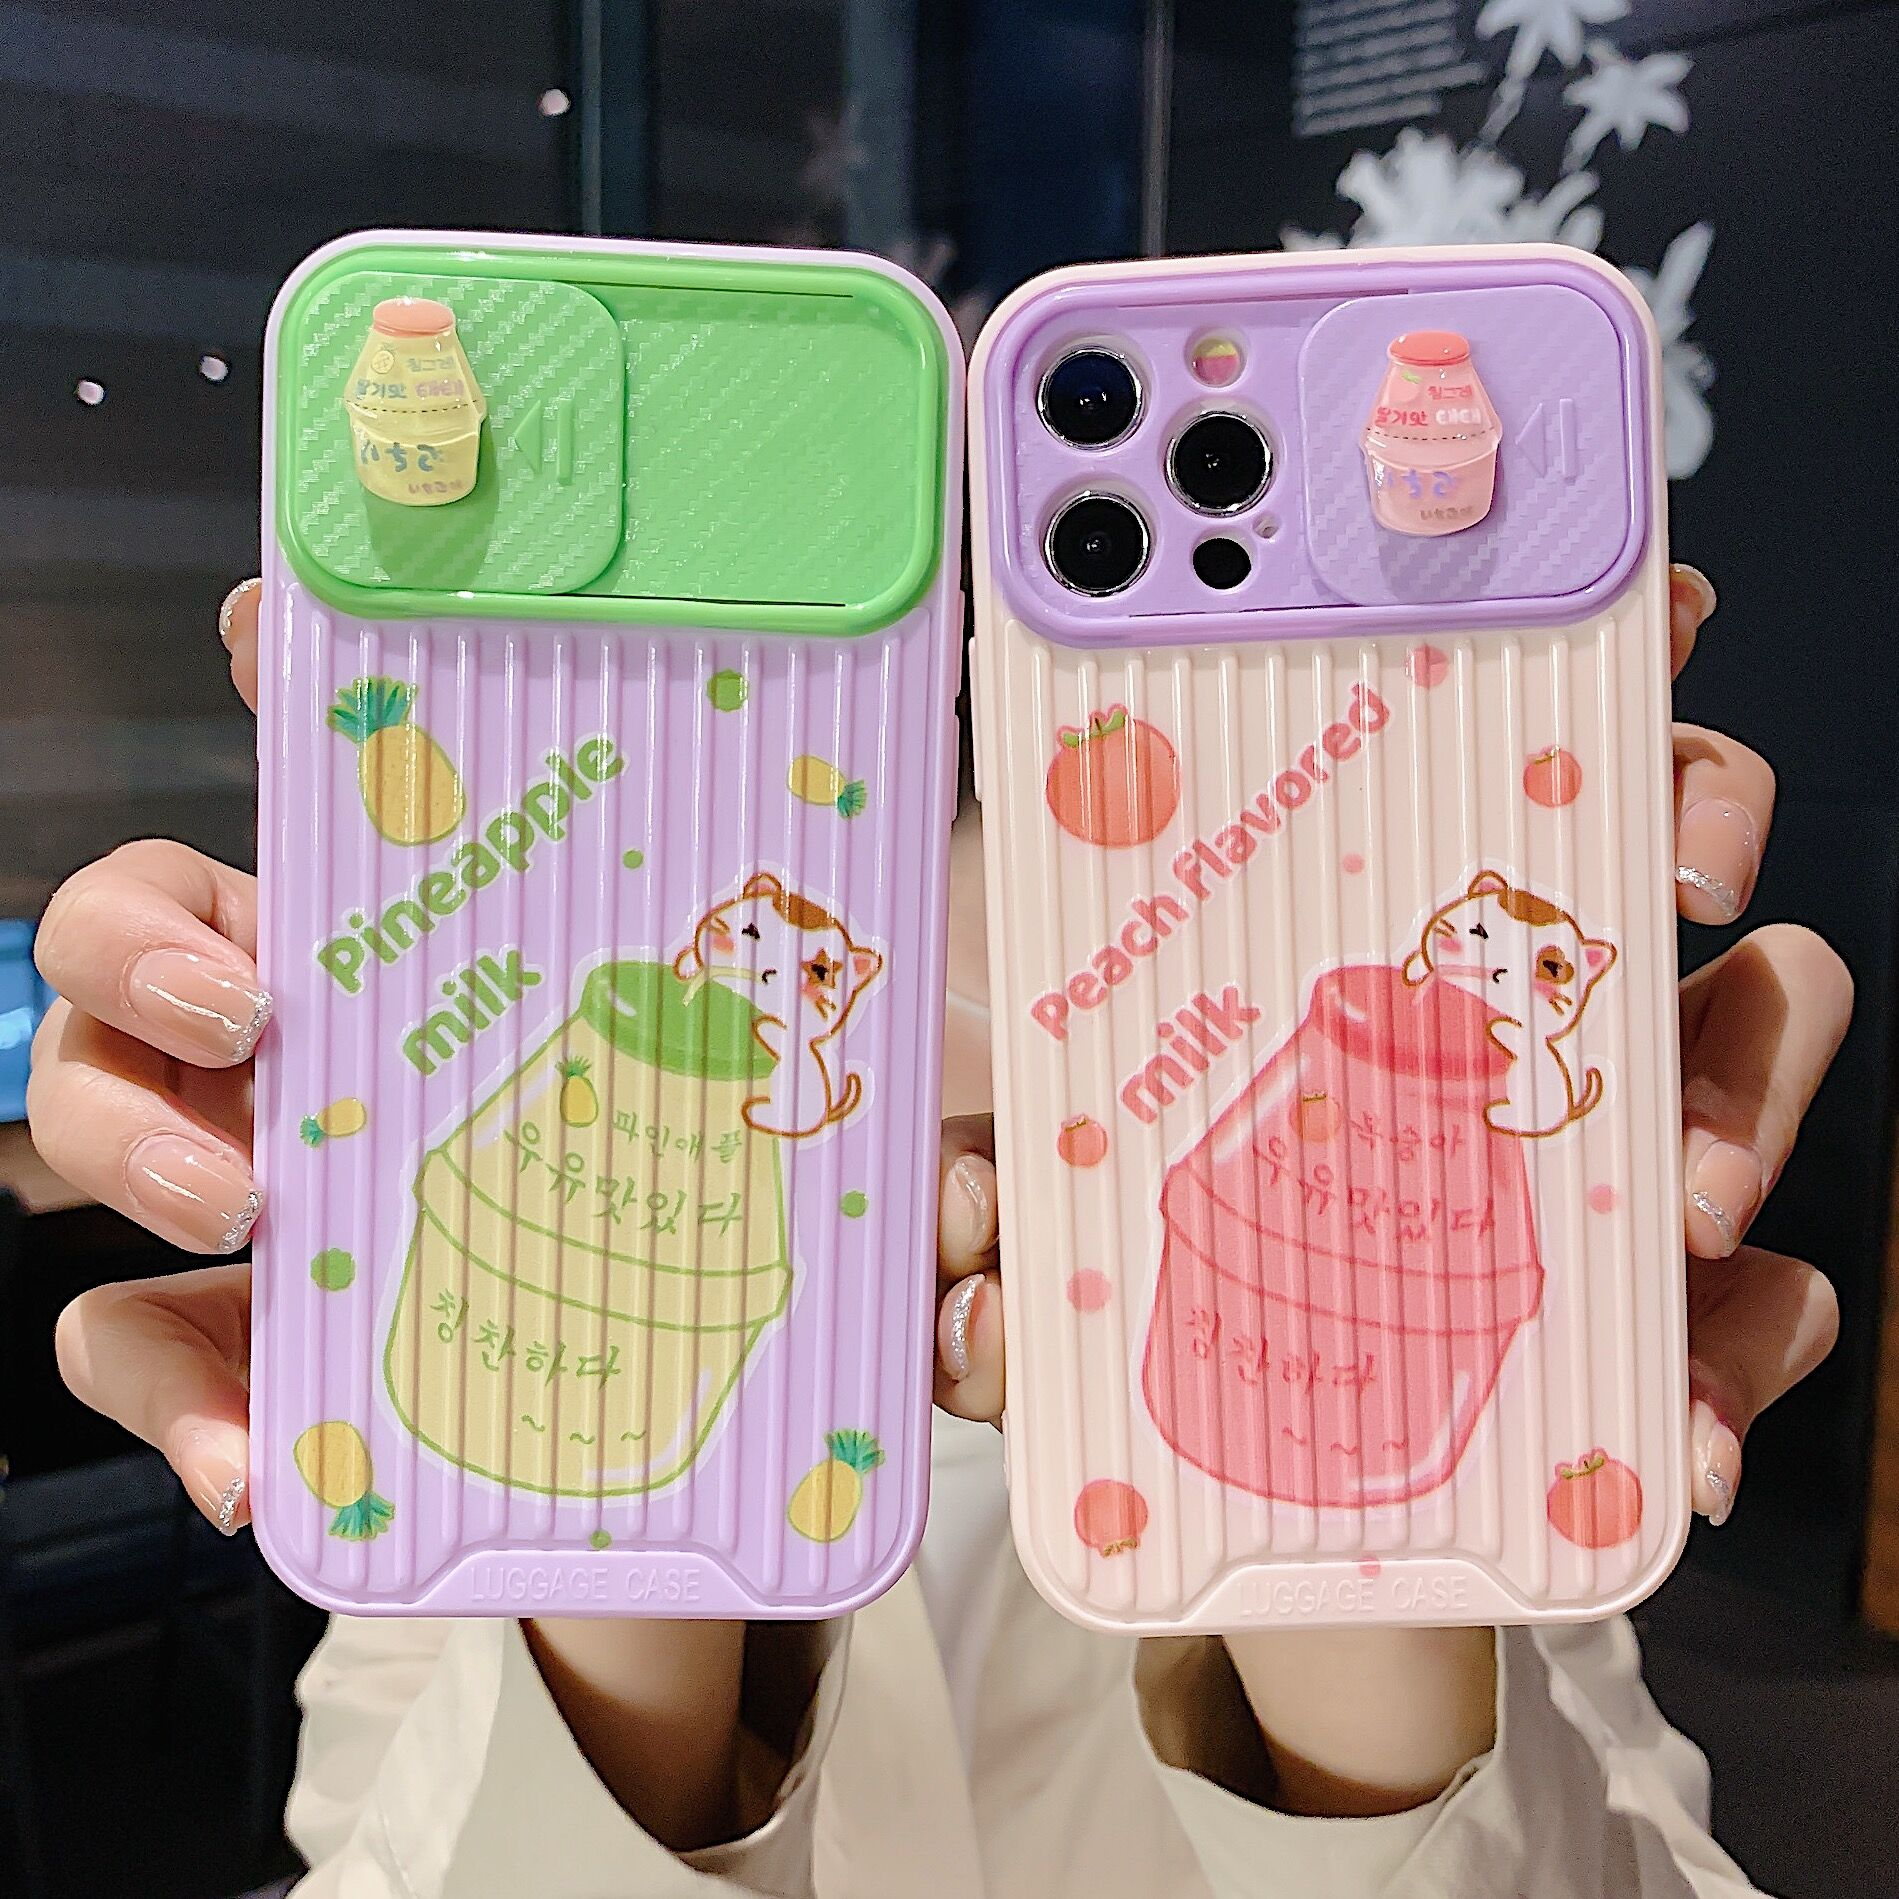 3D Cute Camera Lens Protection Phone Case On For Iphone 12 11 Pro Max 12 Mini 8 7 Plus Xr X Xs Max SE 2020